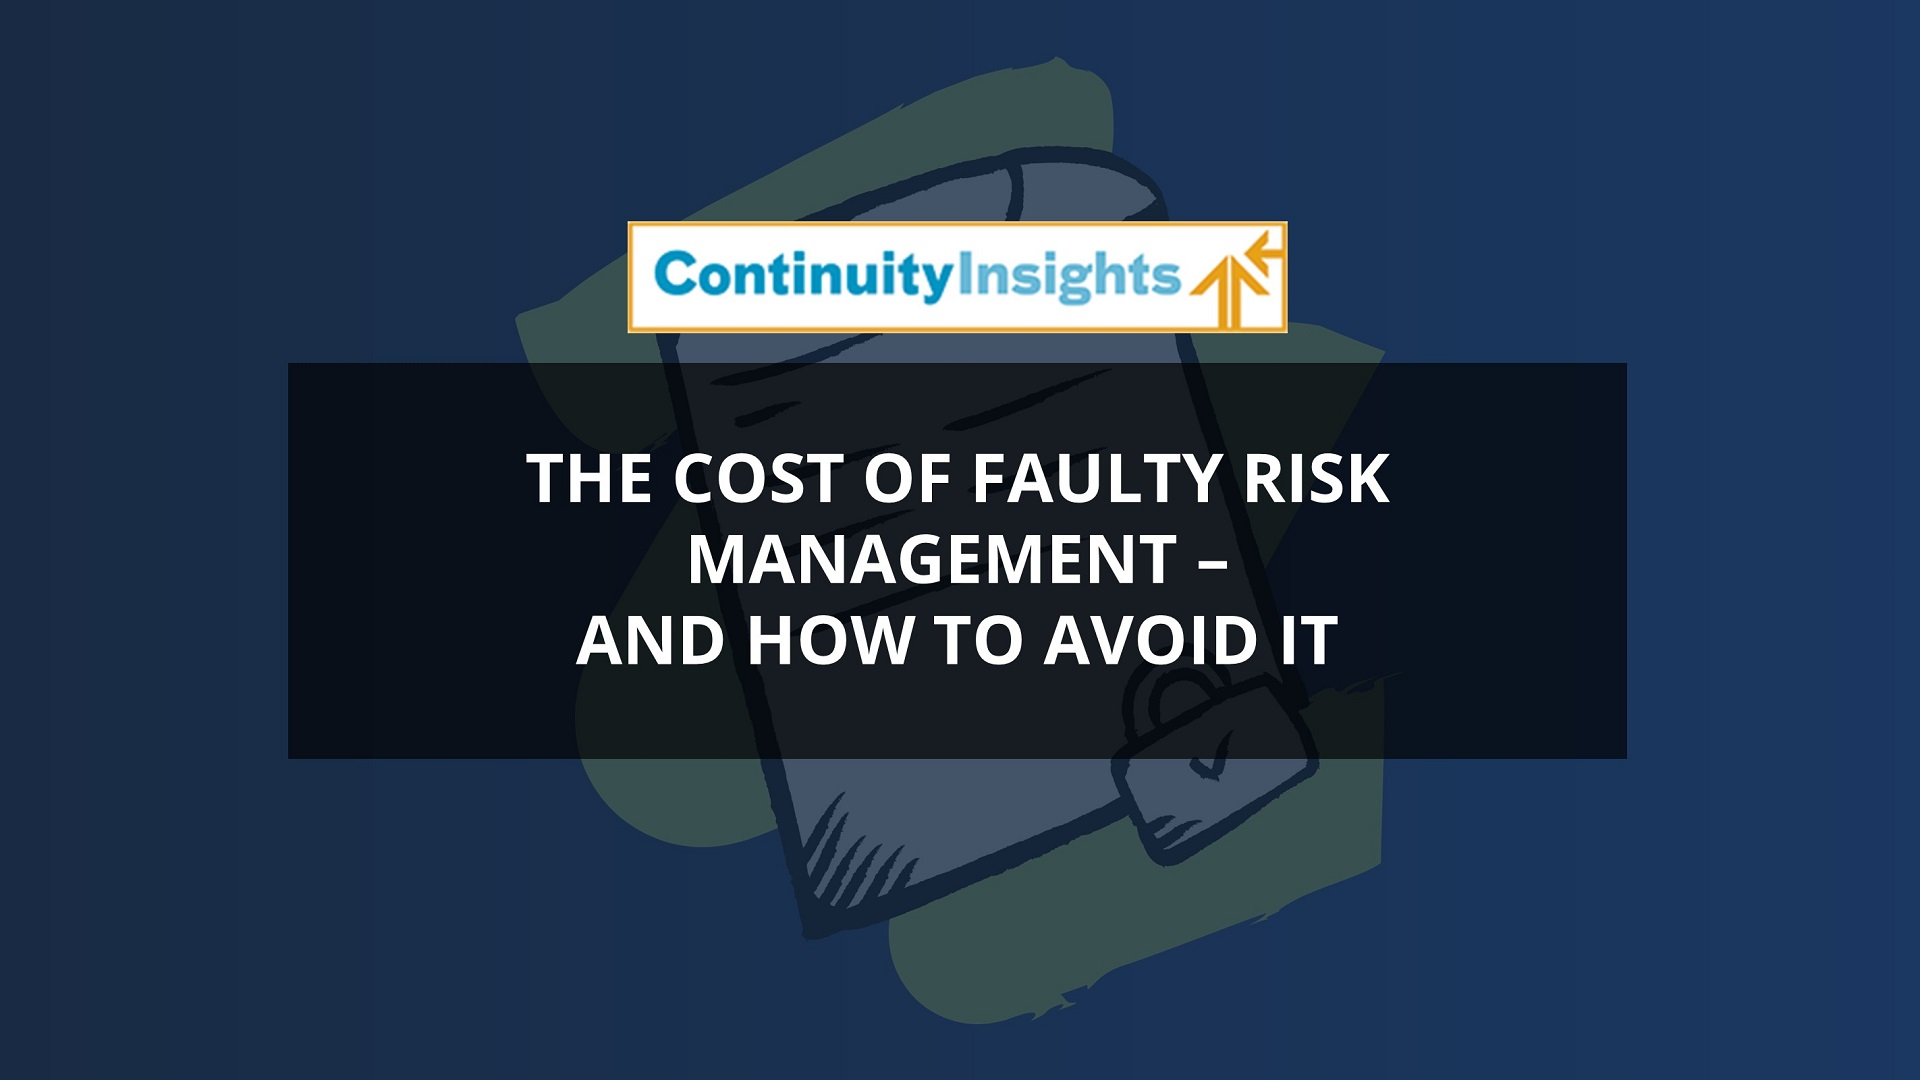 Cost of faulty risk management